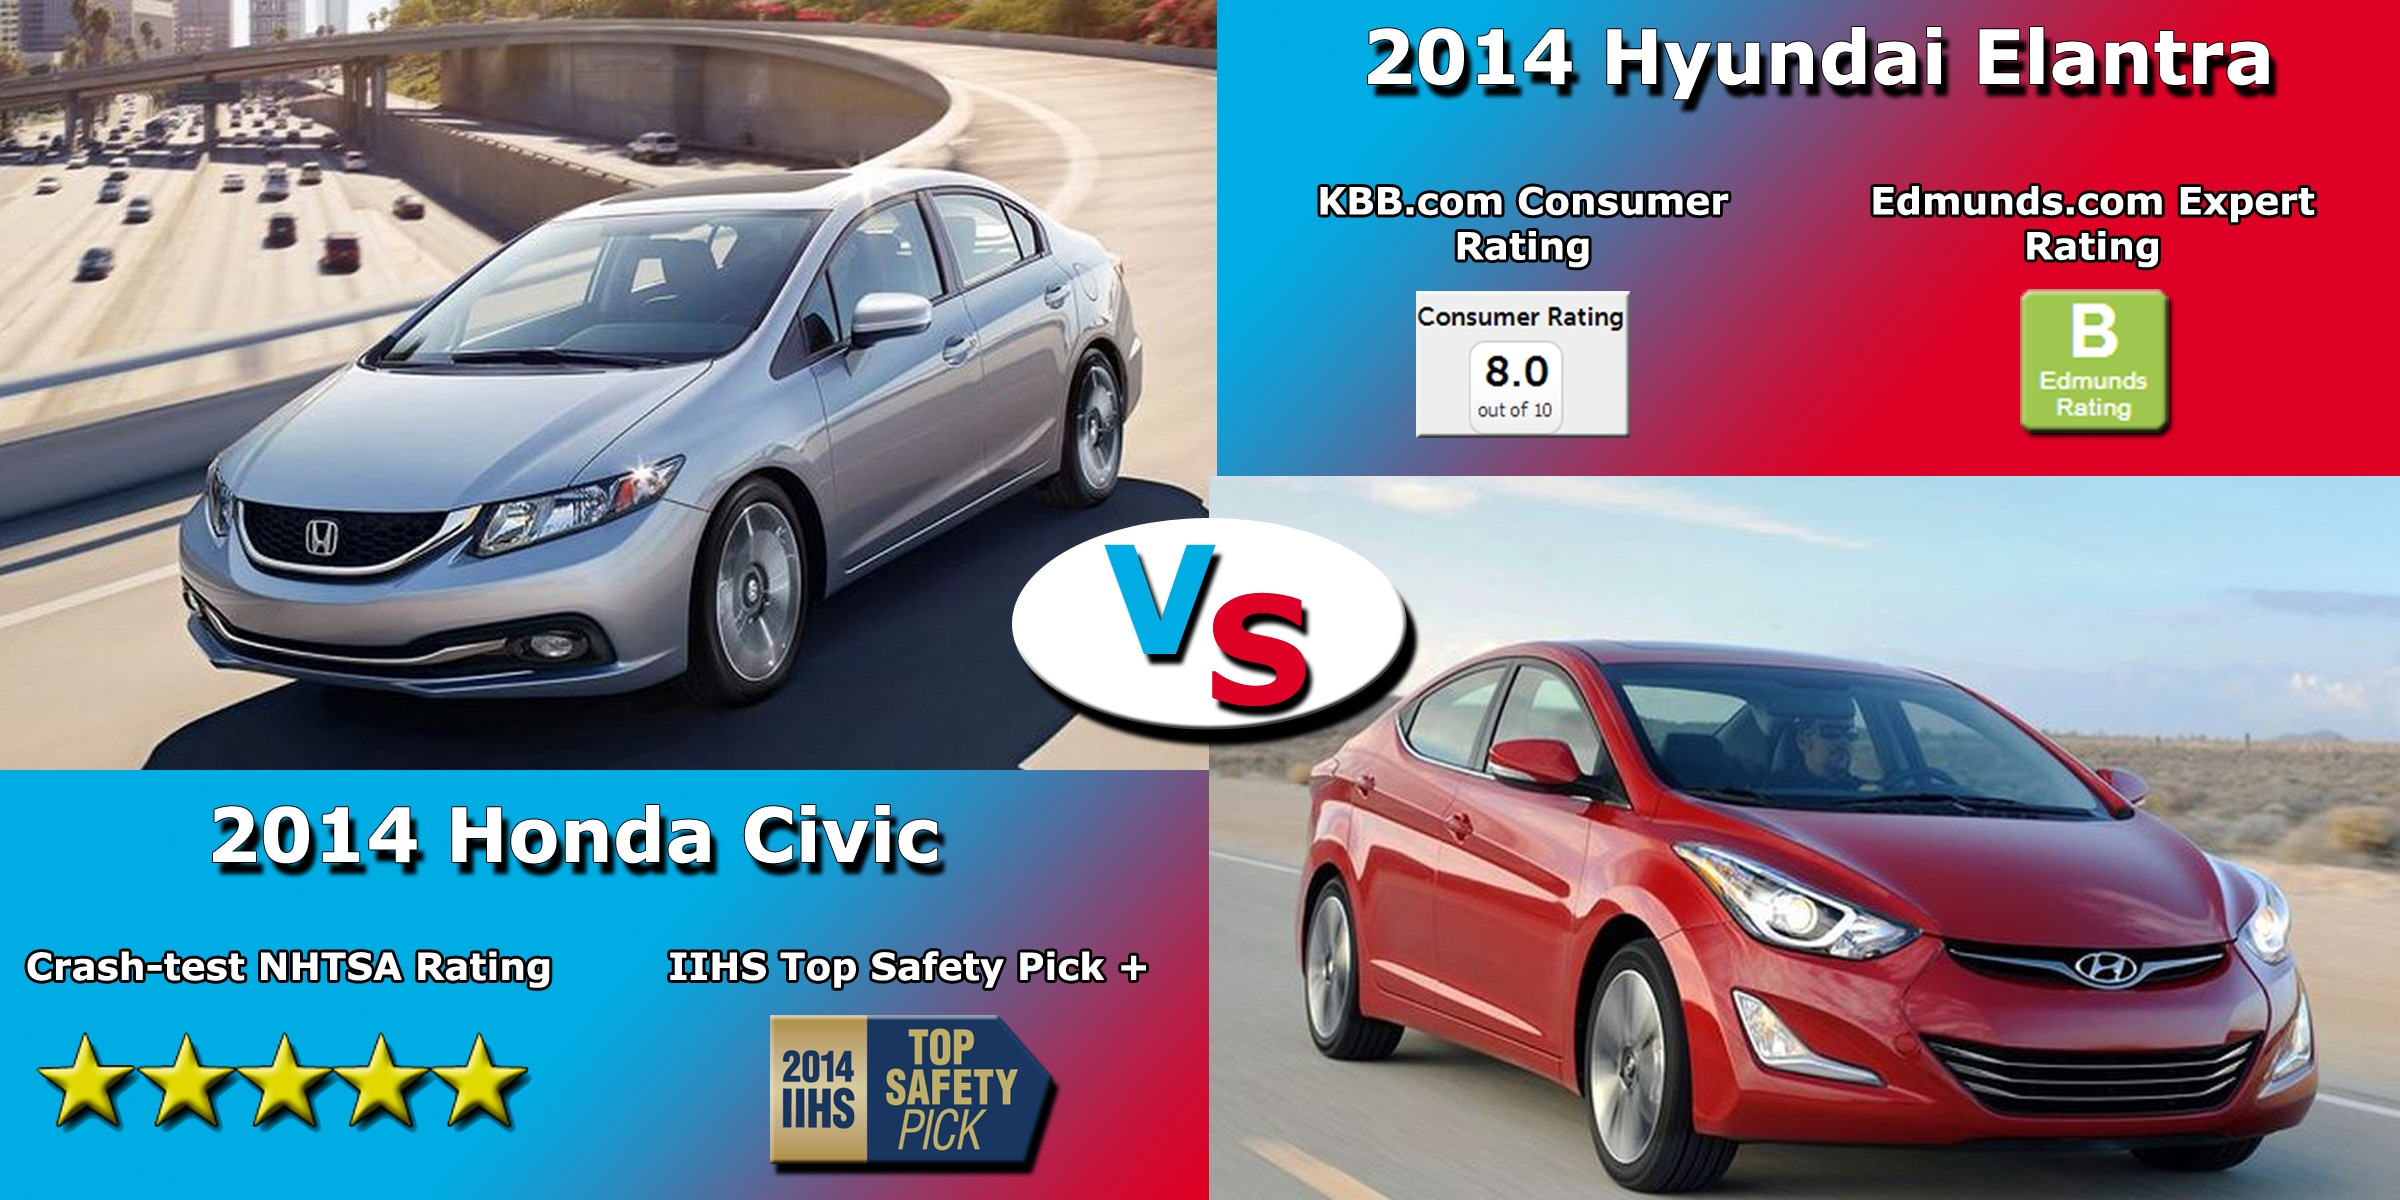 Compare The 2014 Honda Civic Against The 2014 Hyundai Elantra